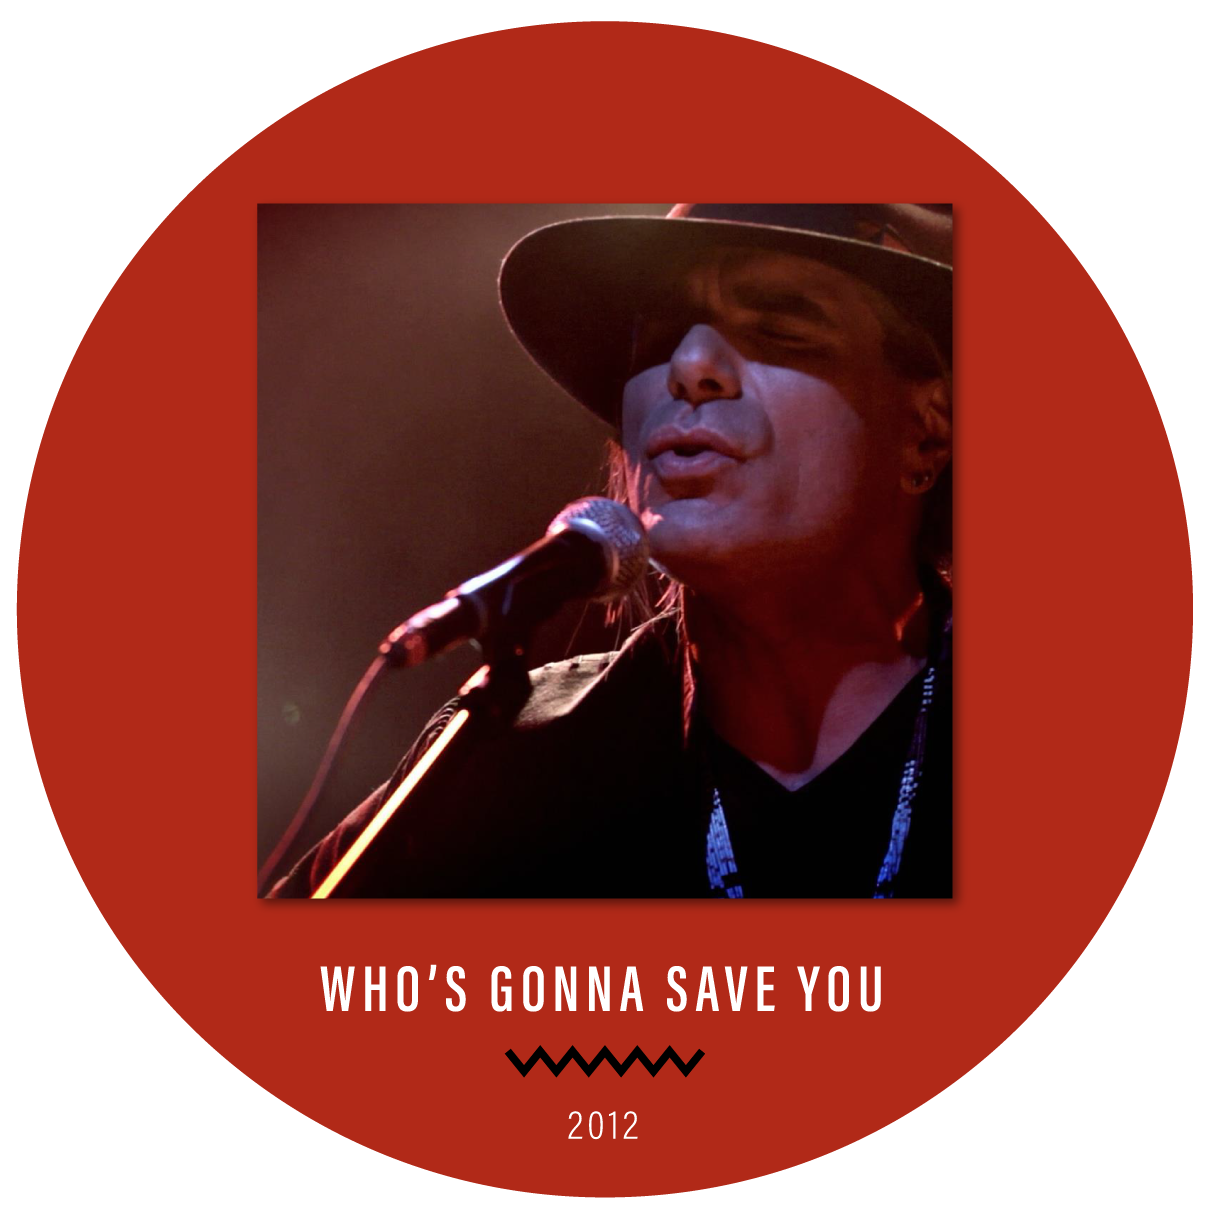 FILM-CARD-WHO'S-GONNA-SAVE-YOU-circle.png